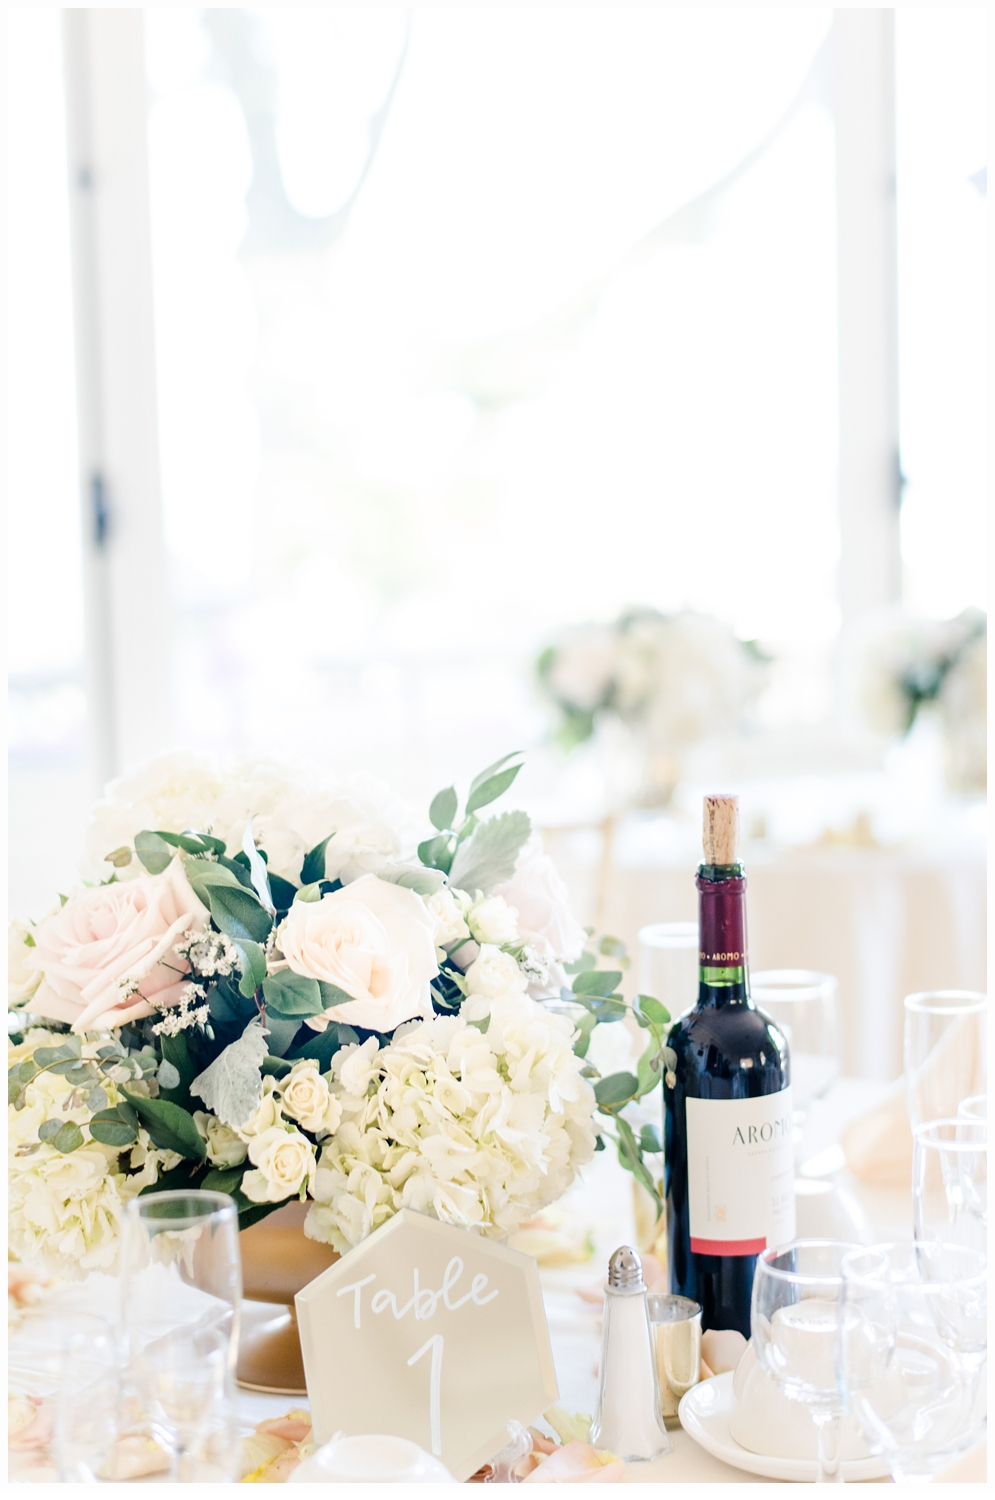 table with flowers and a bottle of wine